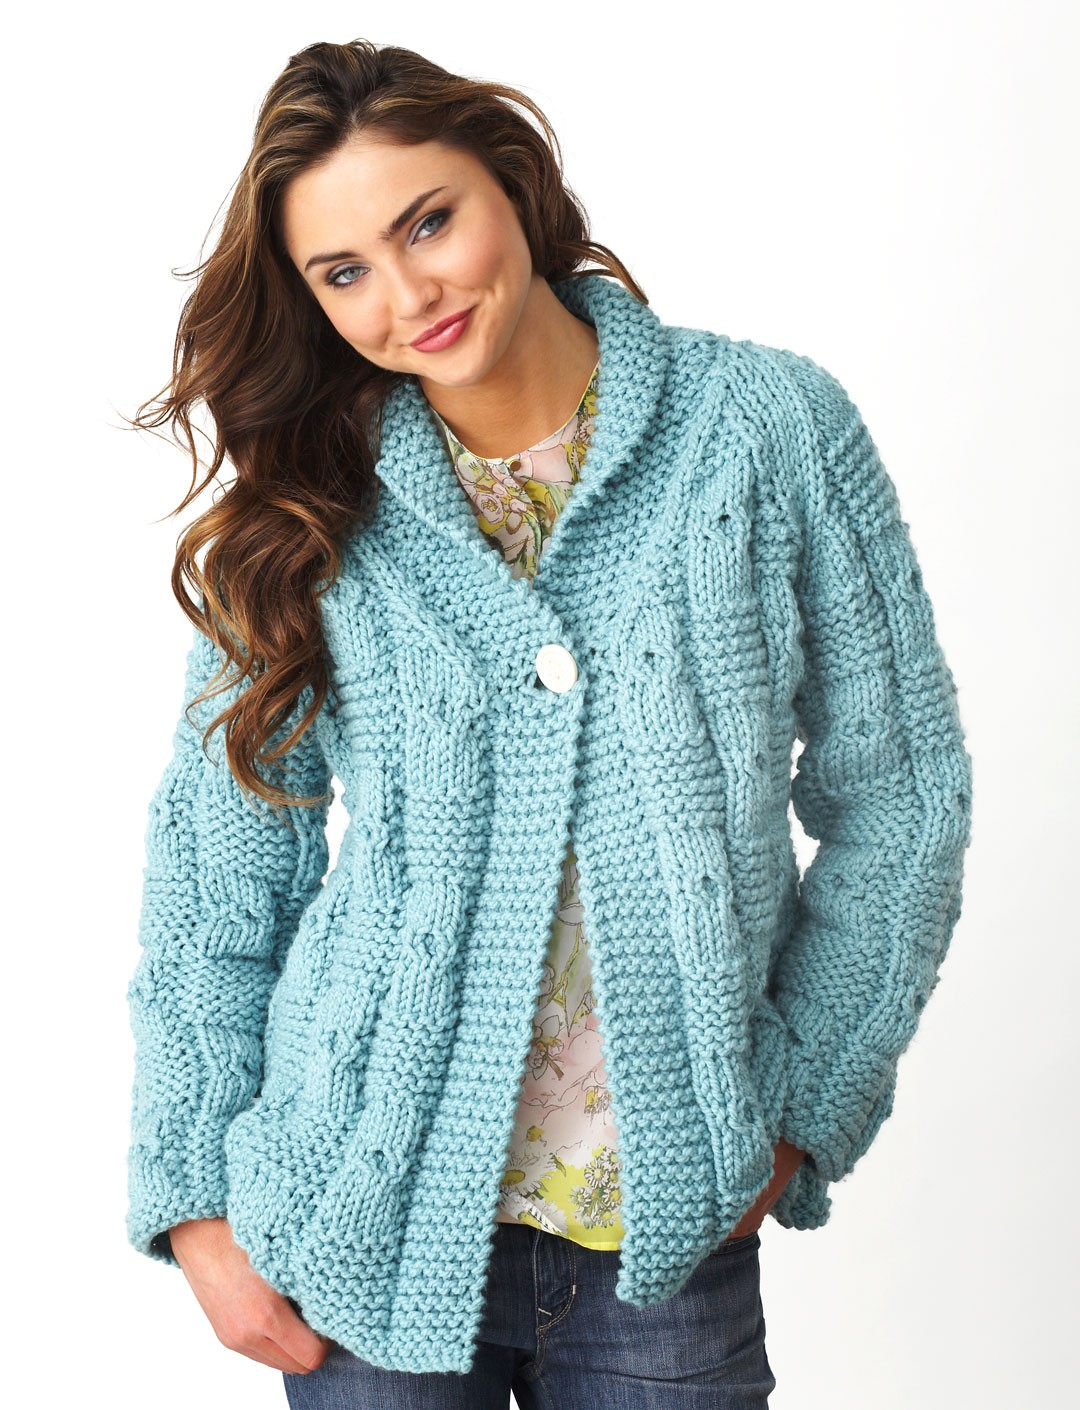 Pattern Knit Sweater : Bernat Textured Checks Cardigan, Knit Pattern Yarnspirations